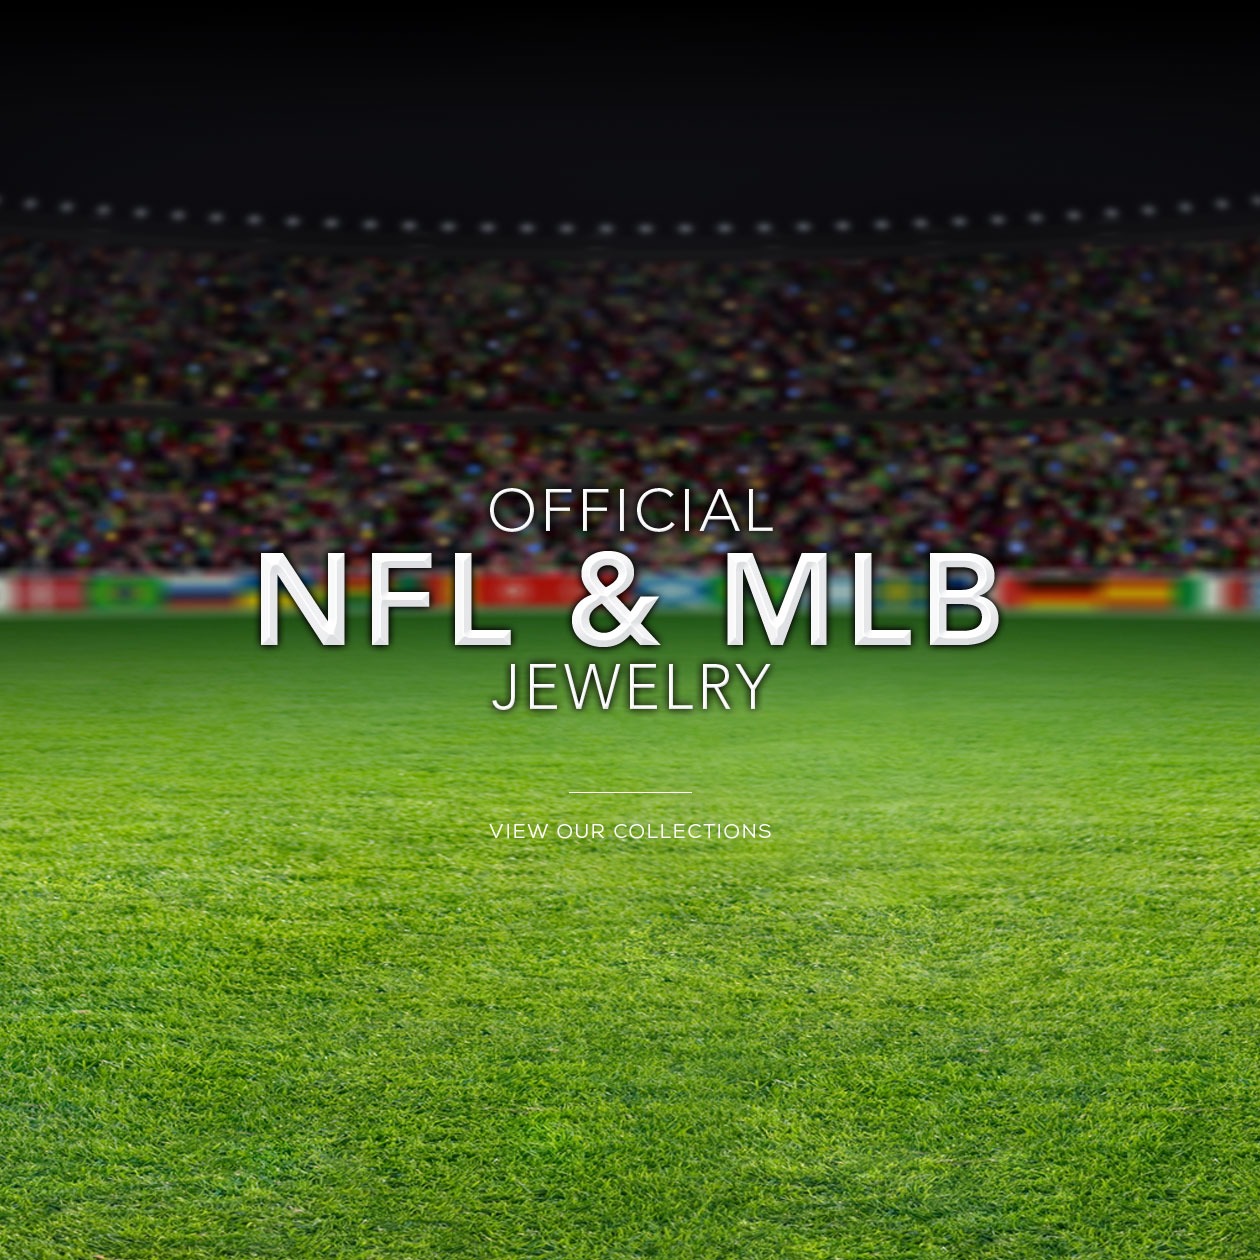 Official Nfl Mlb Jewelry